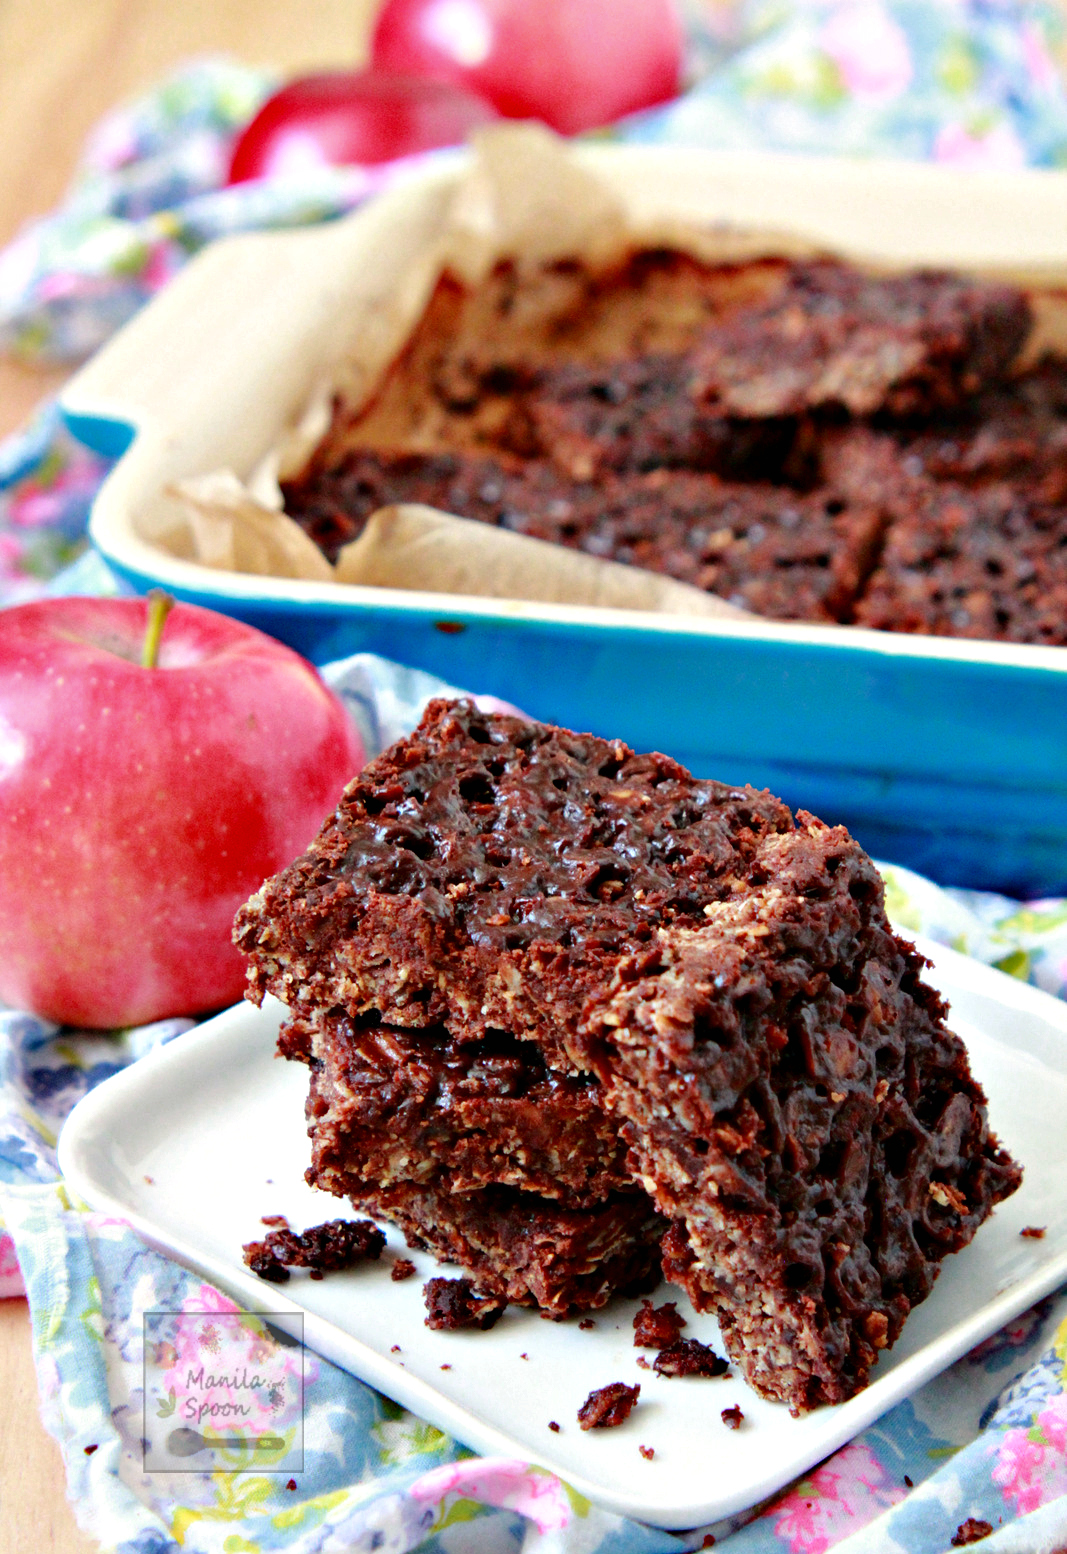 Chewy Chocolate Flapjacks (Oat Bars)